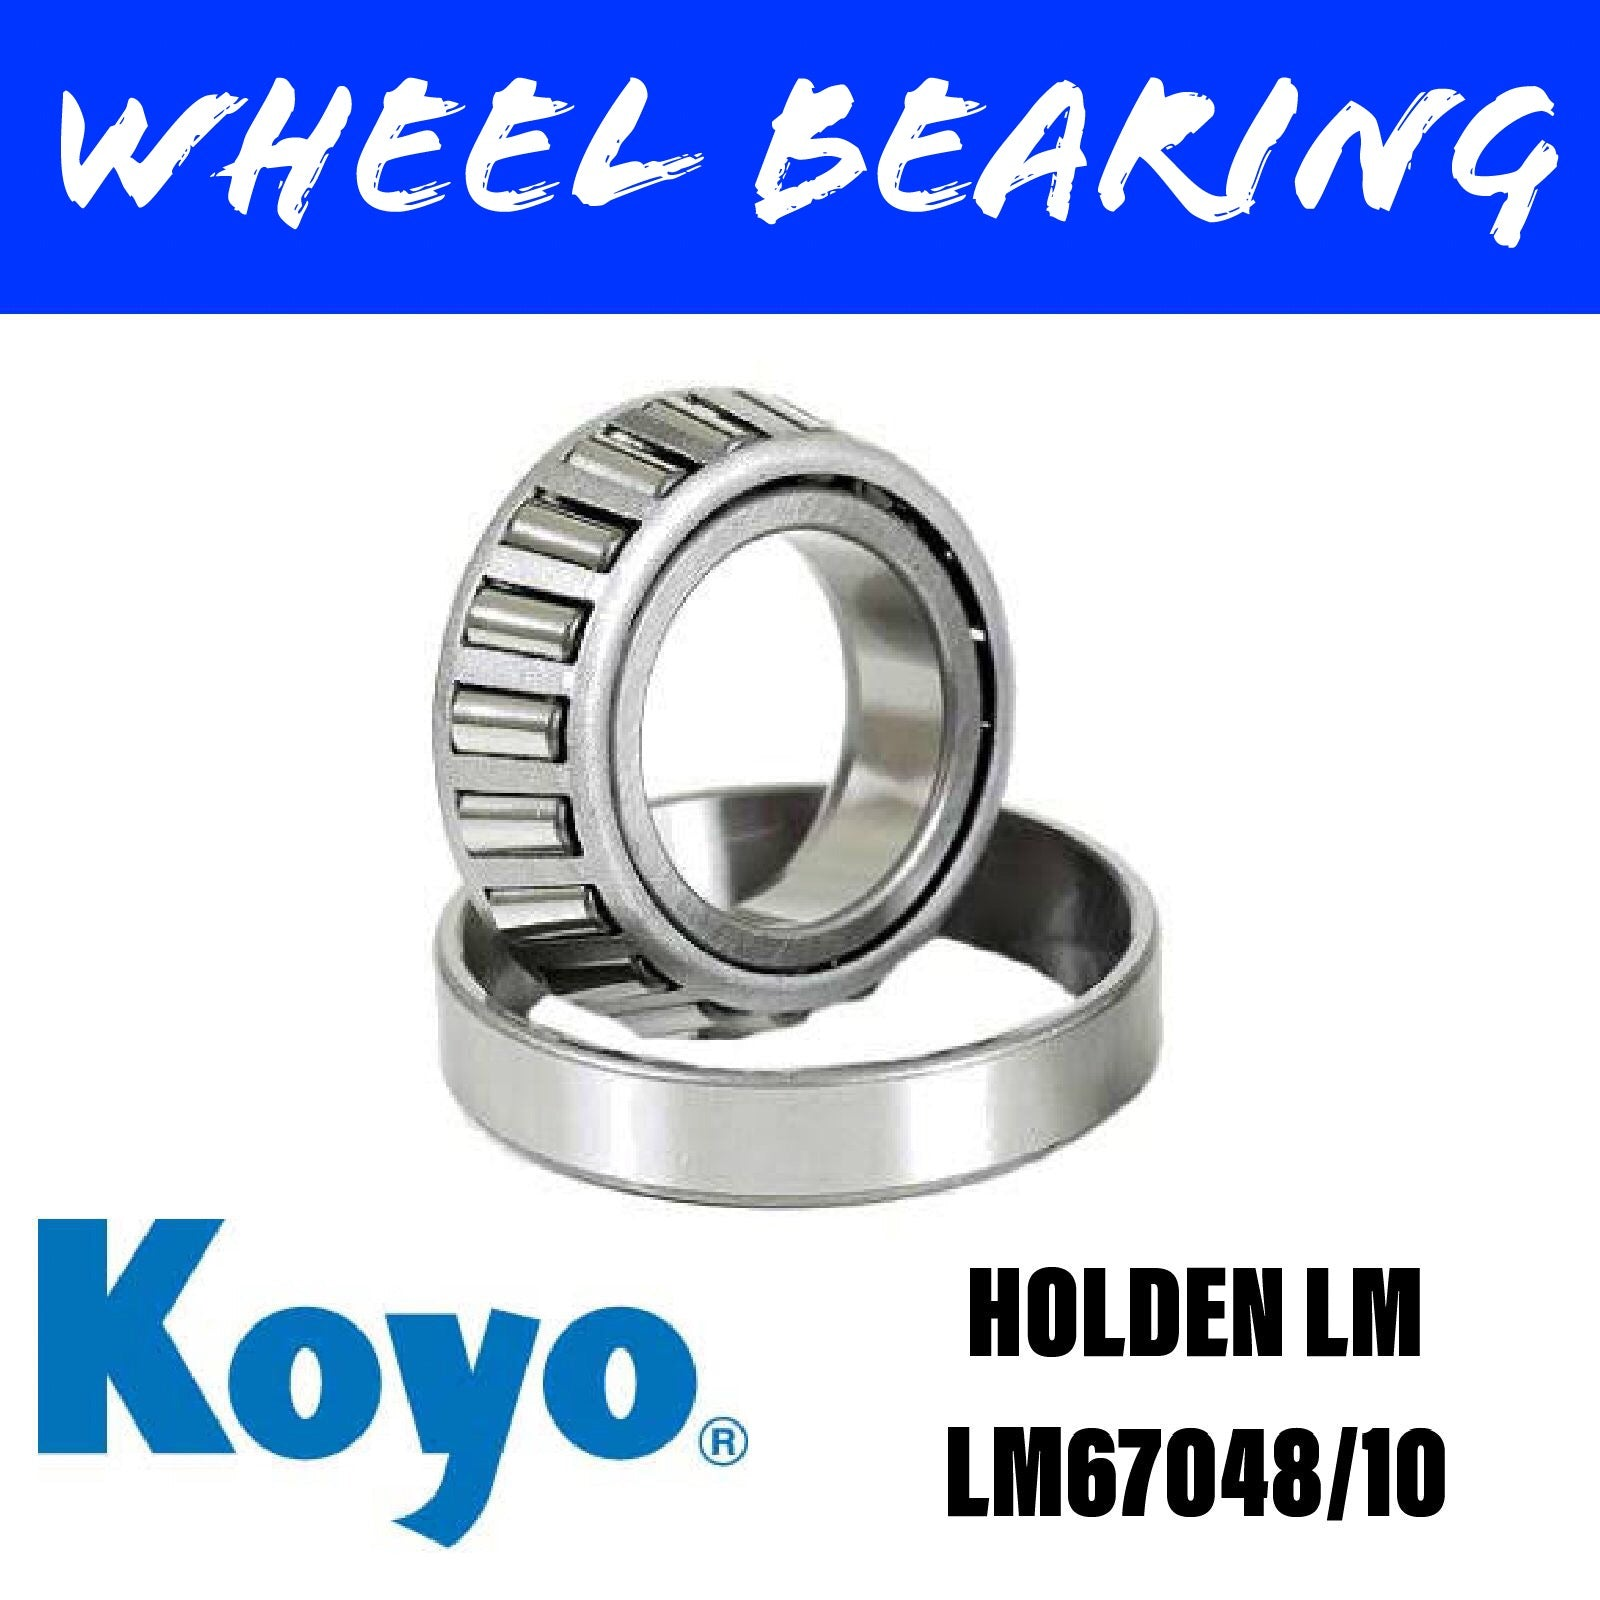 KOYO LM67048/10 Wheel Bearing